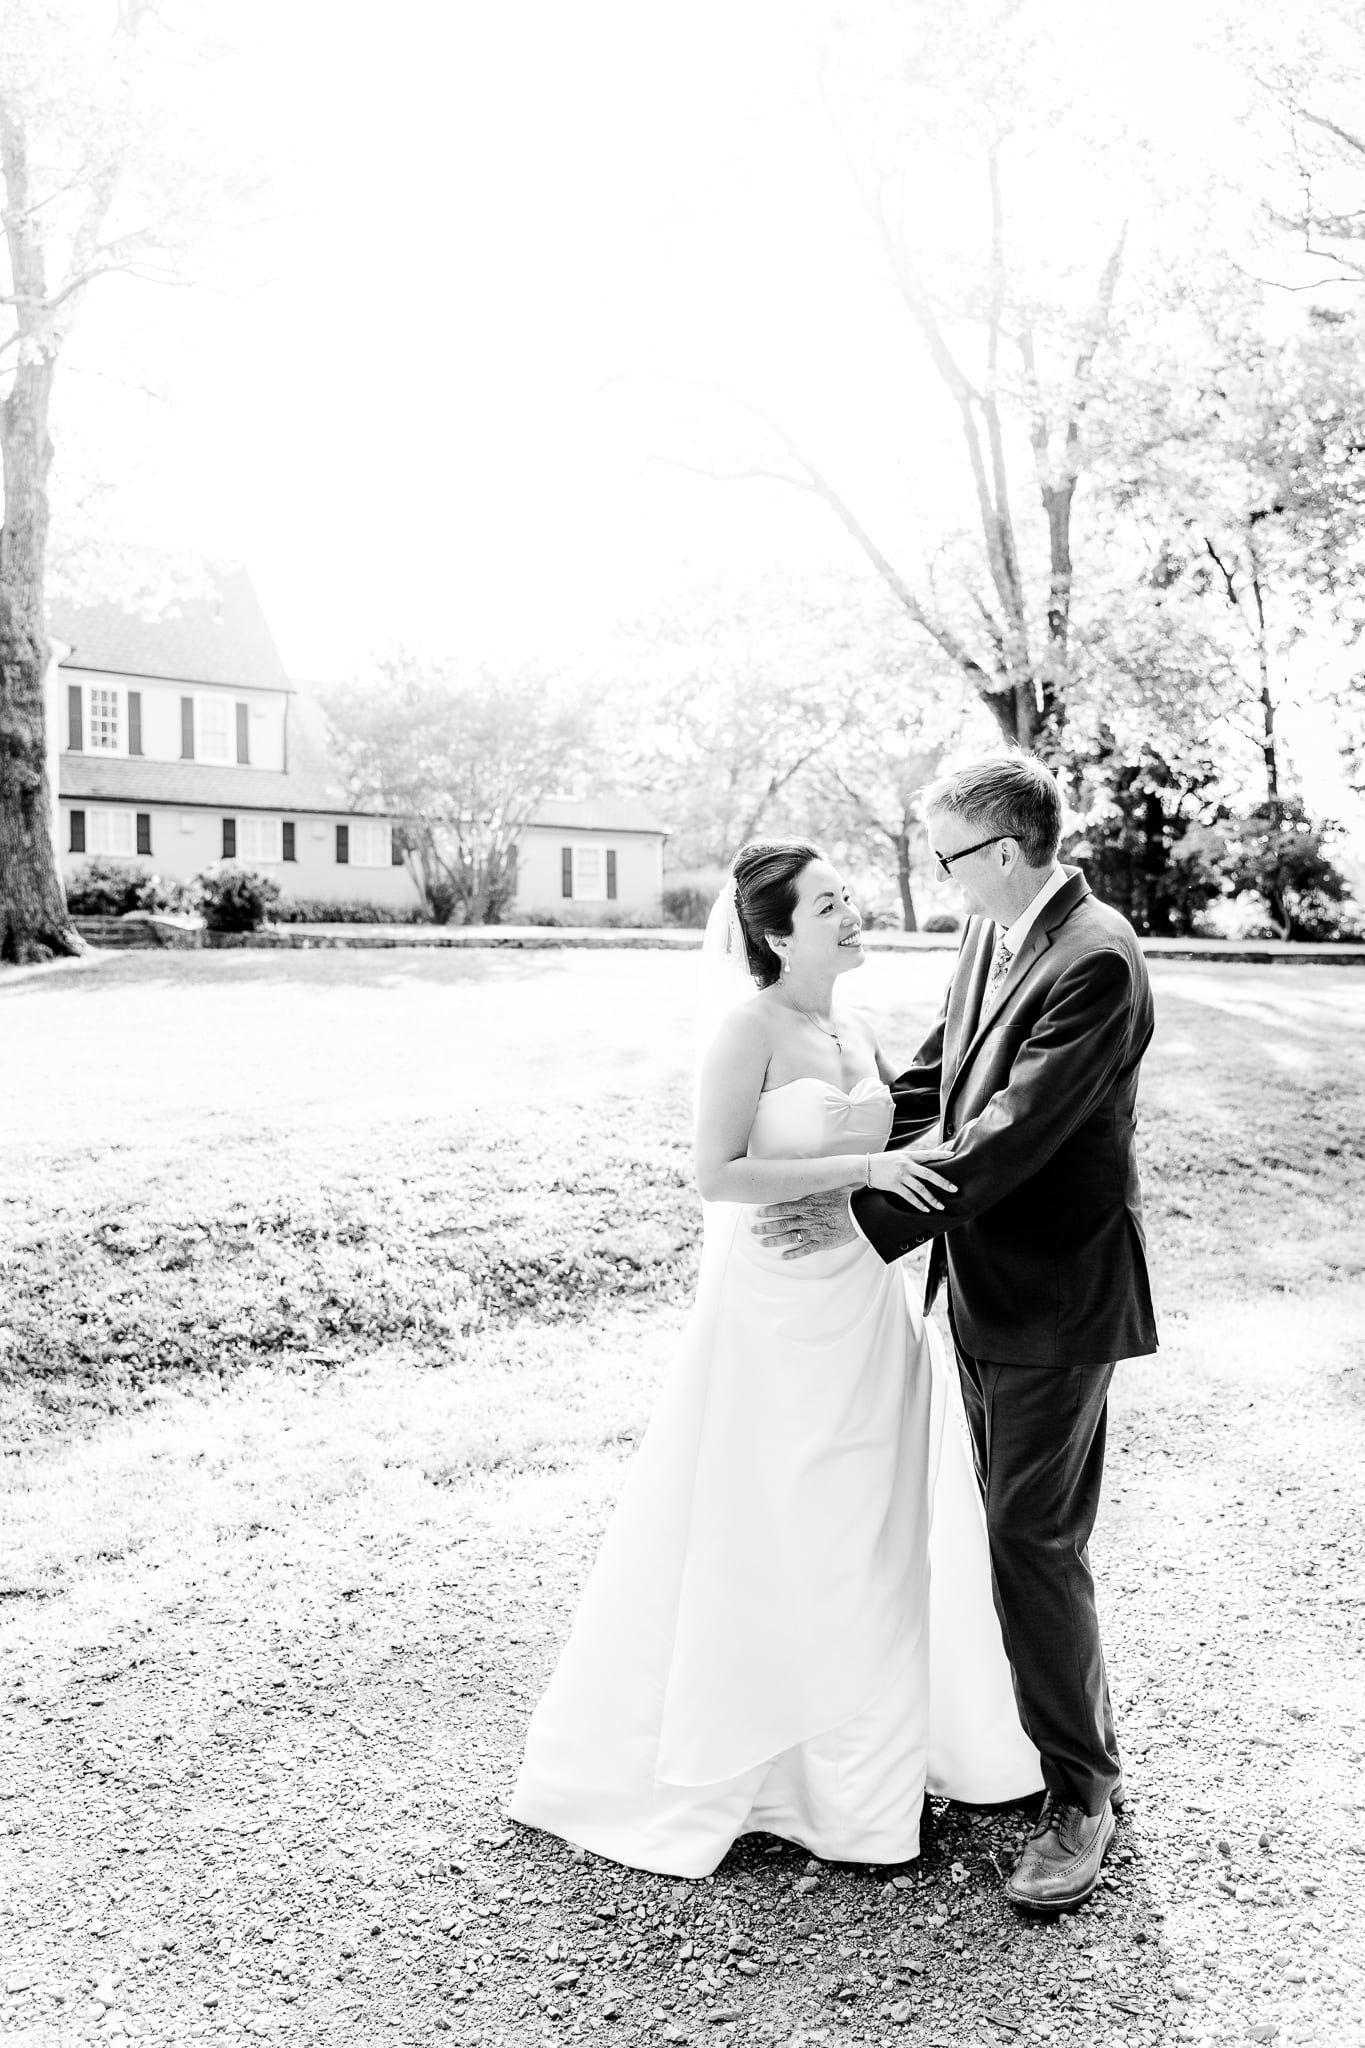 A Taiwanese bride poses with her groom in front of the Hunter House at Nottoway Park after their wedding in Vienna, Northern Virginia